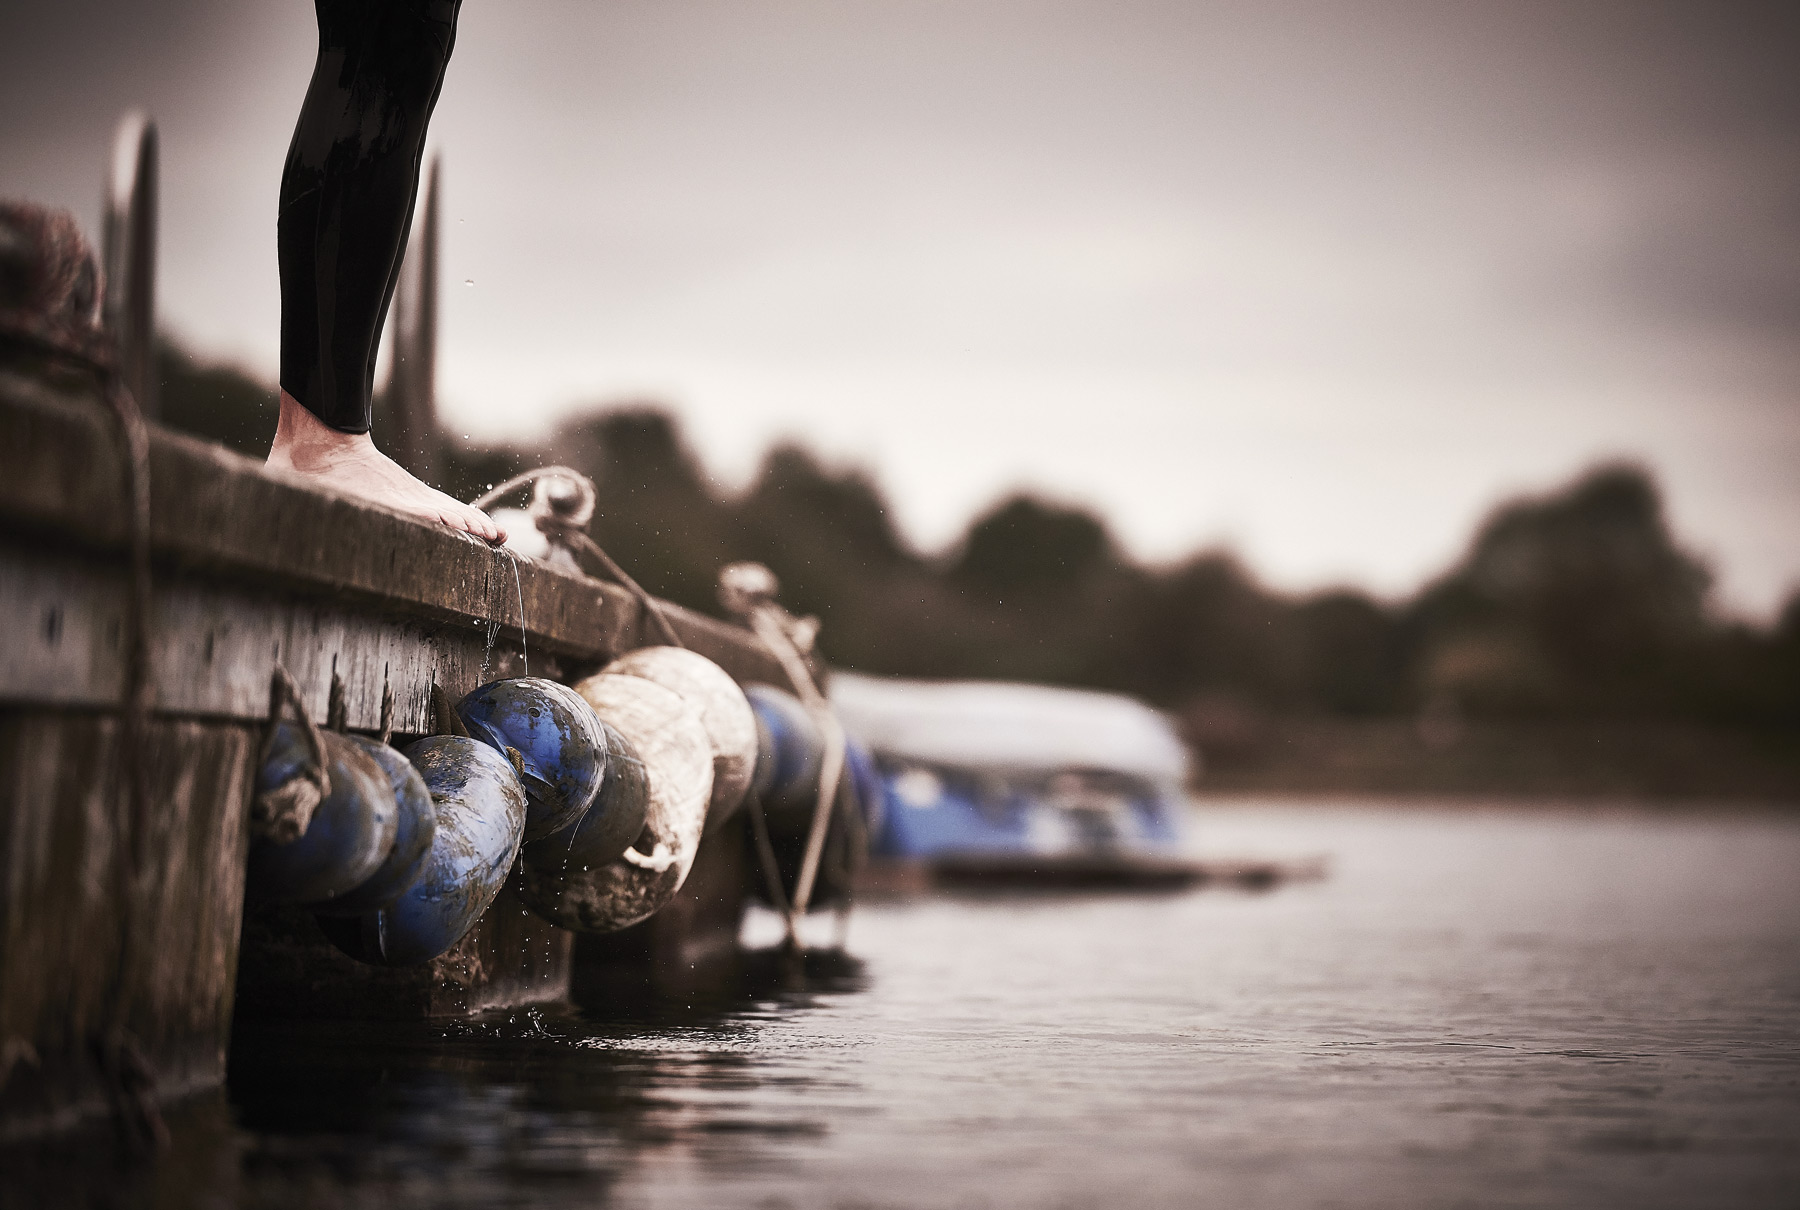 A man's feet as he prepares to jump into open water